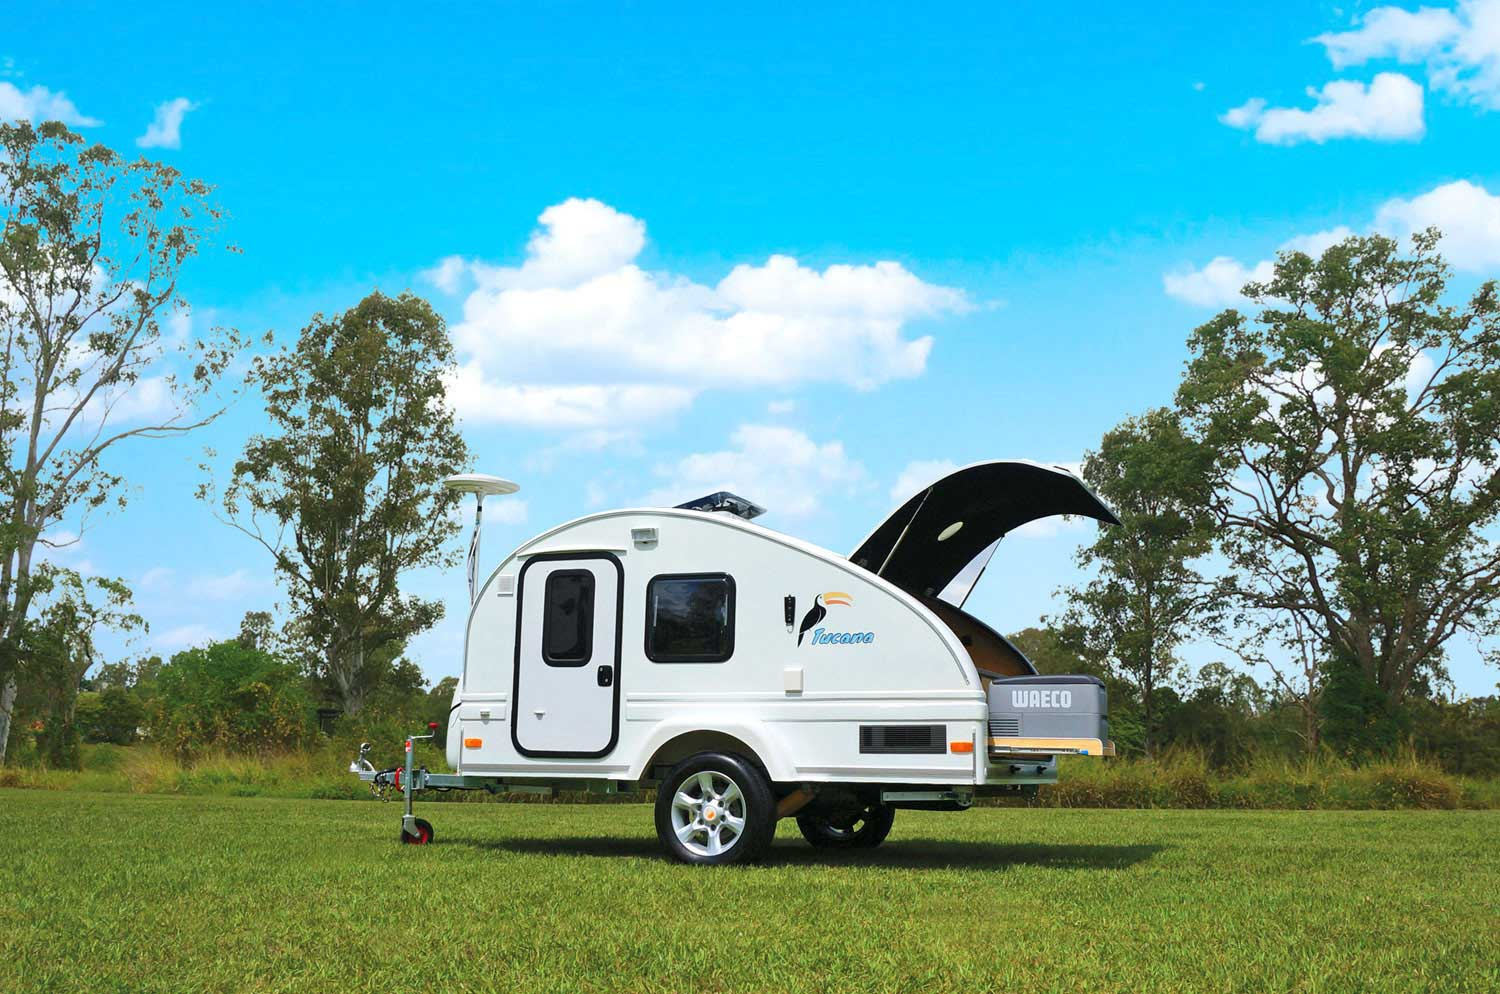 Tucana Teardrop Camper Teardrop Camper For Sale